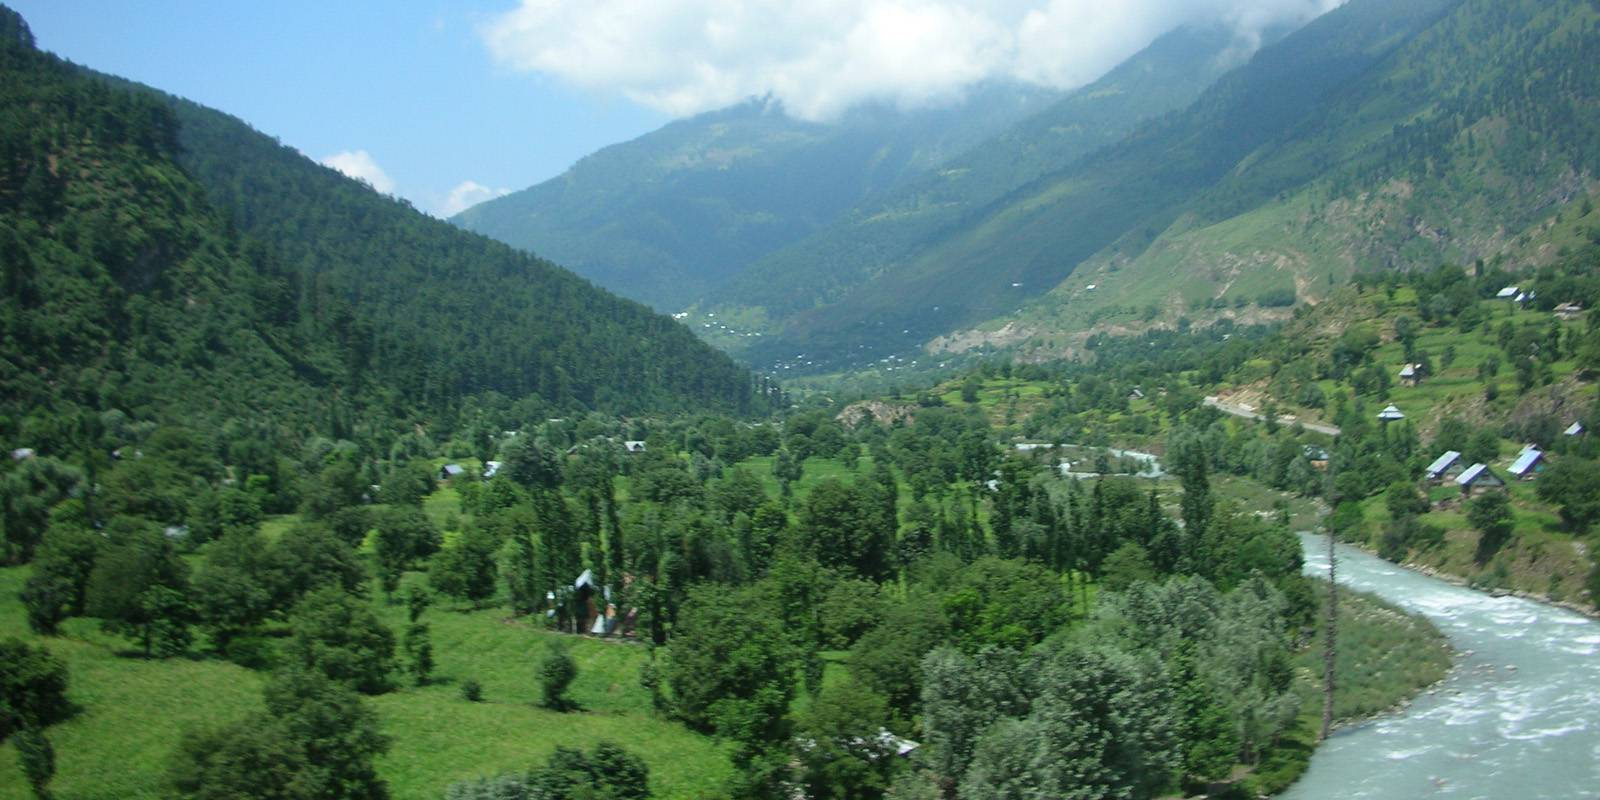 Reconciliation and justice in Kashmir